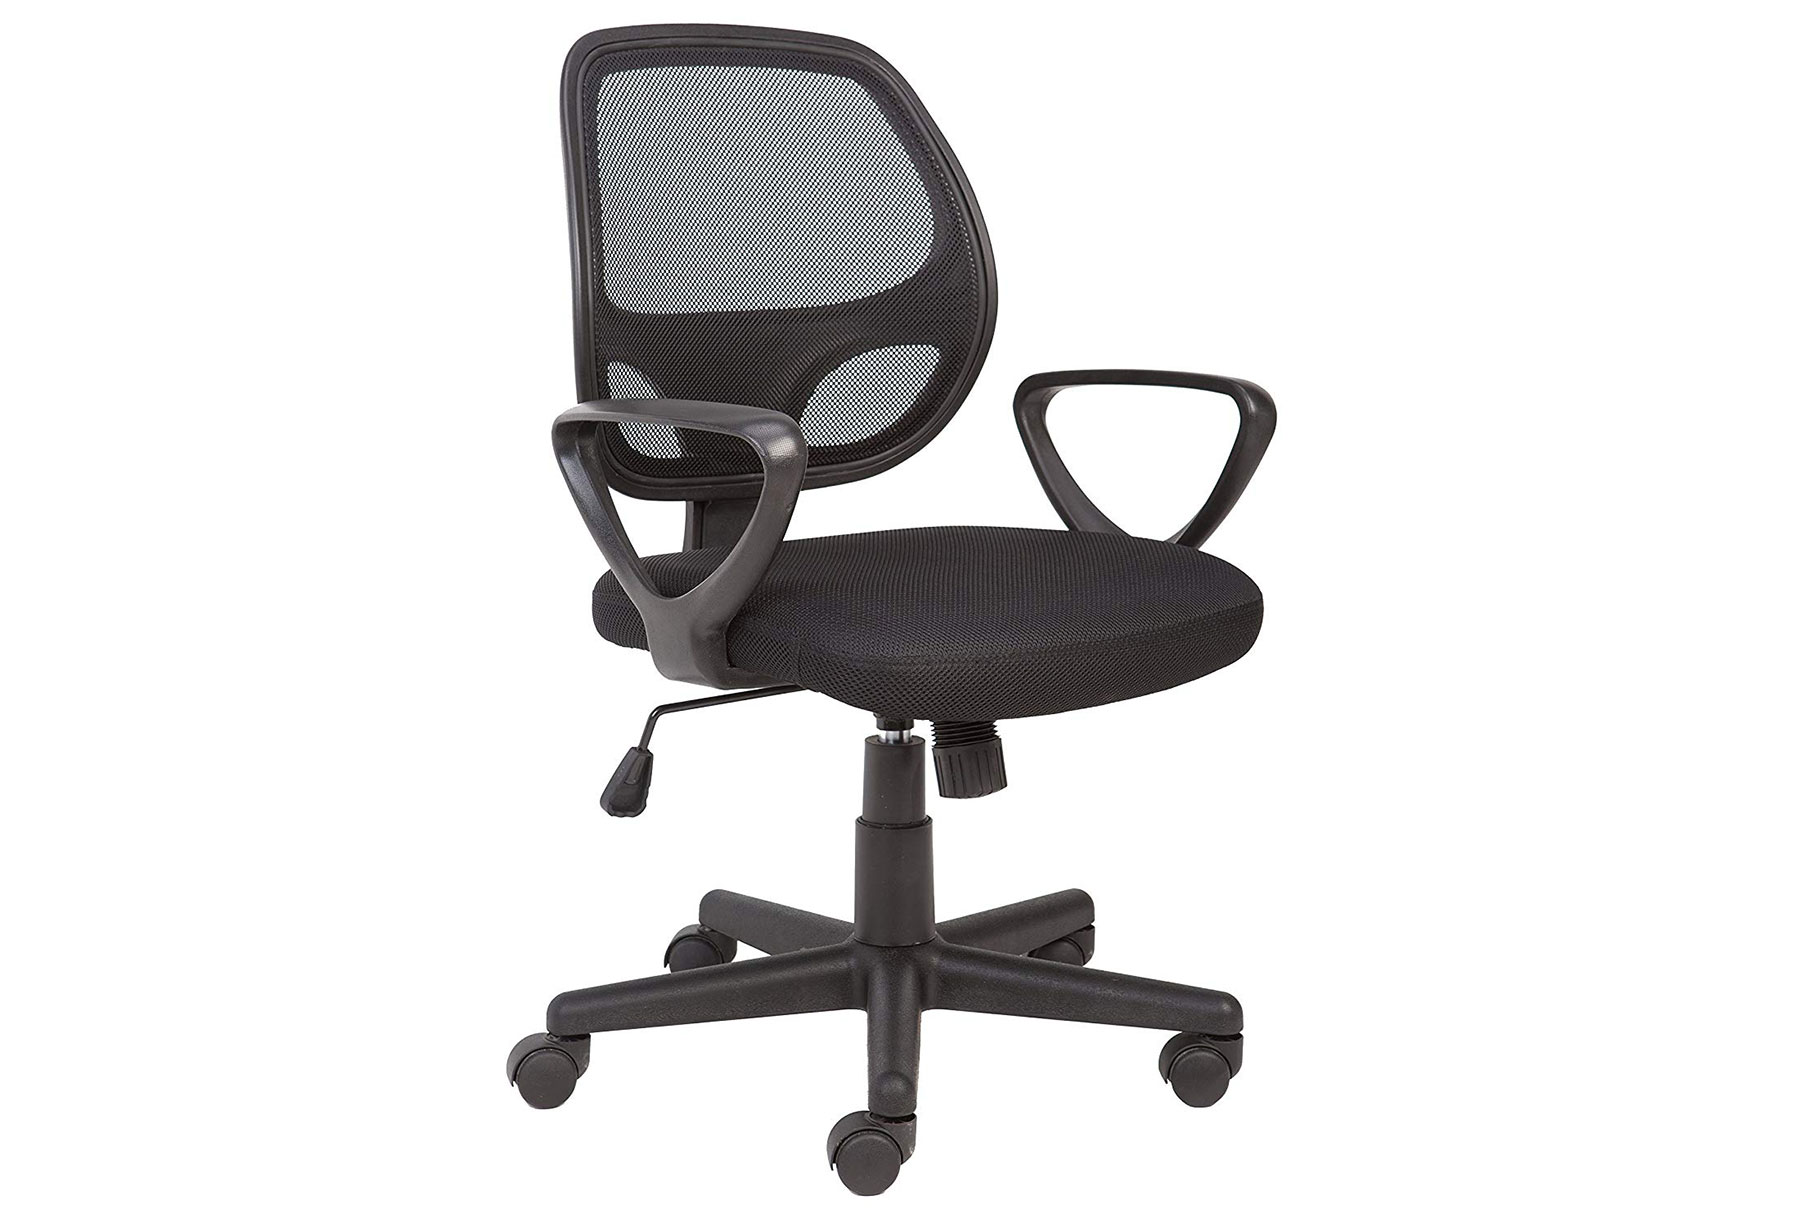 Best cheap office chair: Amazon Office Essentials Mesh Back Swivel Desk Chair